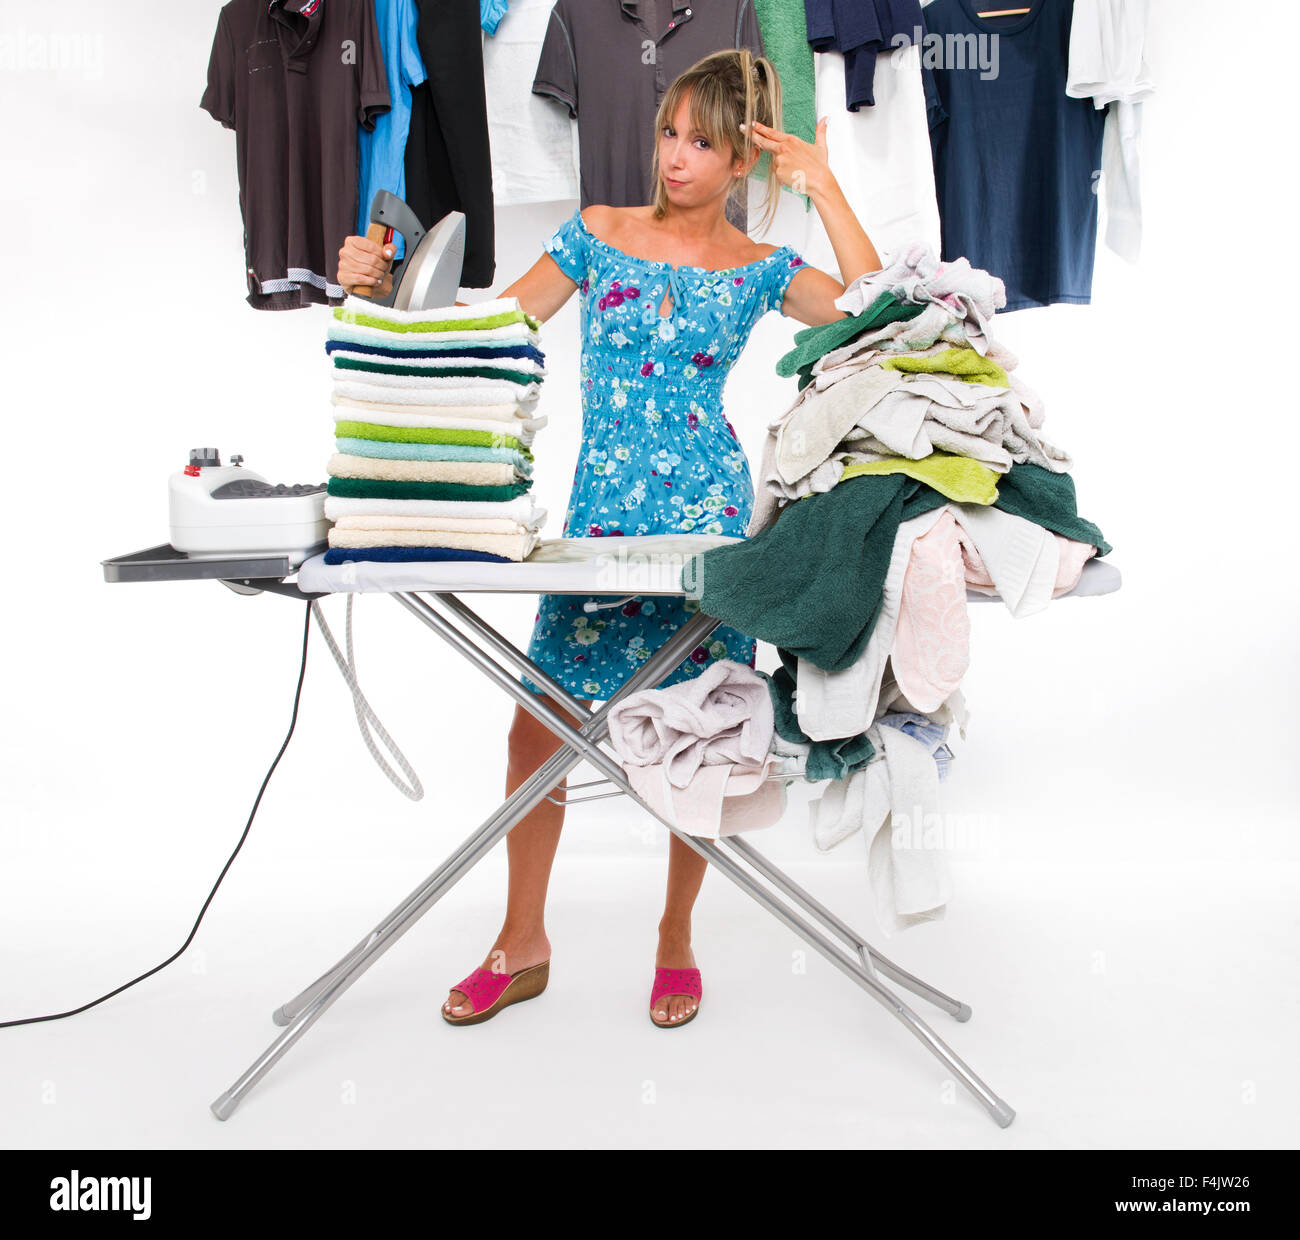 Woman with hands makes the gesture of shooting himself while ironing on board many clothing - Stock Image